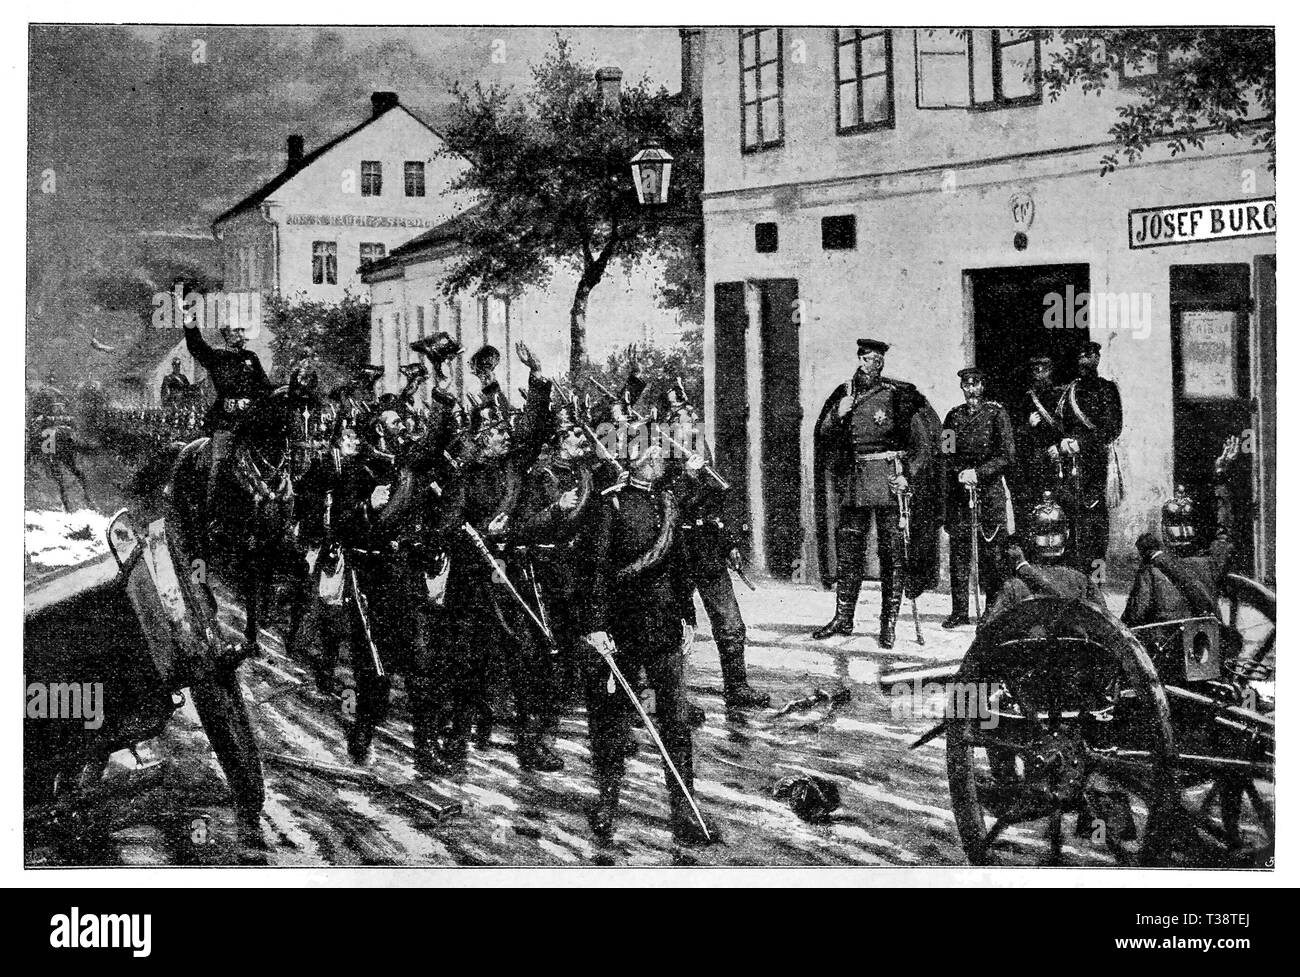 Crown Prince of Prussia Friedrich Wilhelm in the morning before the Battle of Königgrätz. Digital improved reproduction from Illustrated overview of the life of mankind in the 19th century, 1901 edition, Marx publishing house, St. Petersburg. - Stock Image